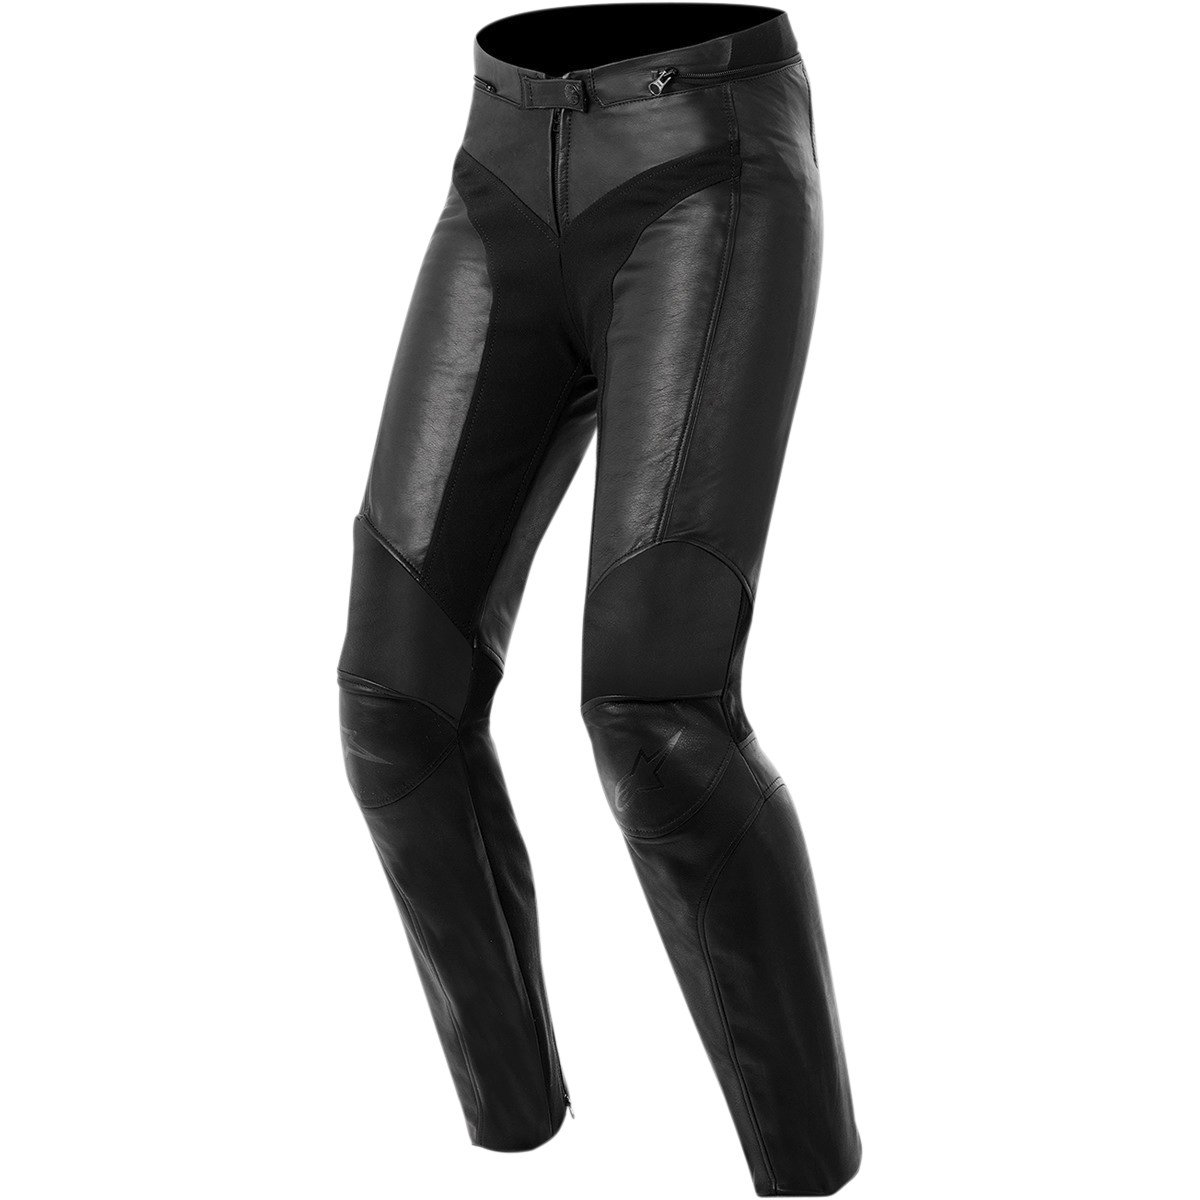 Alpinestars Vika Women's Sports Bike Motorcycle Pants - Black / Size 48